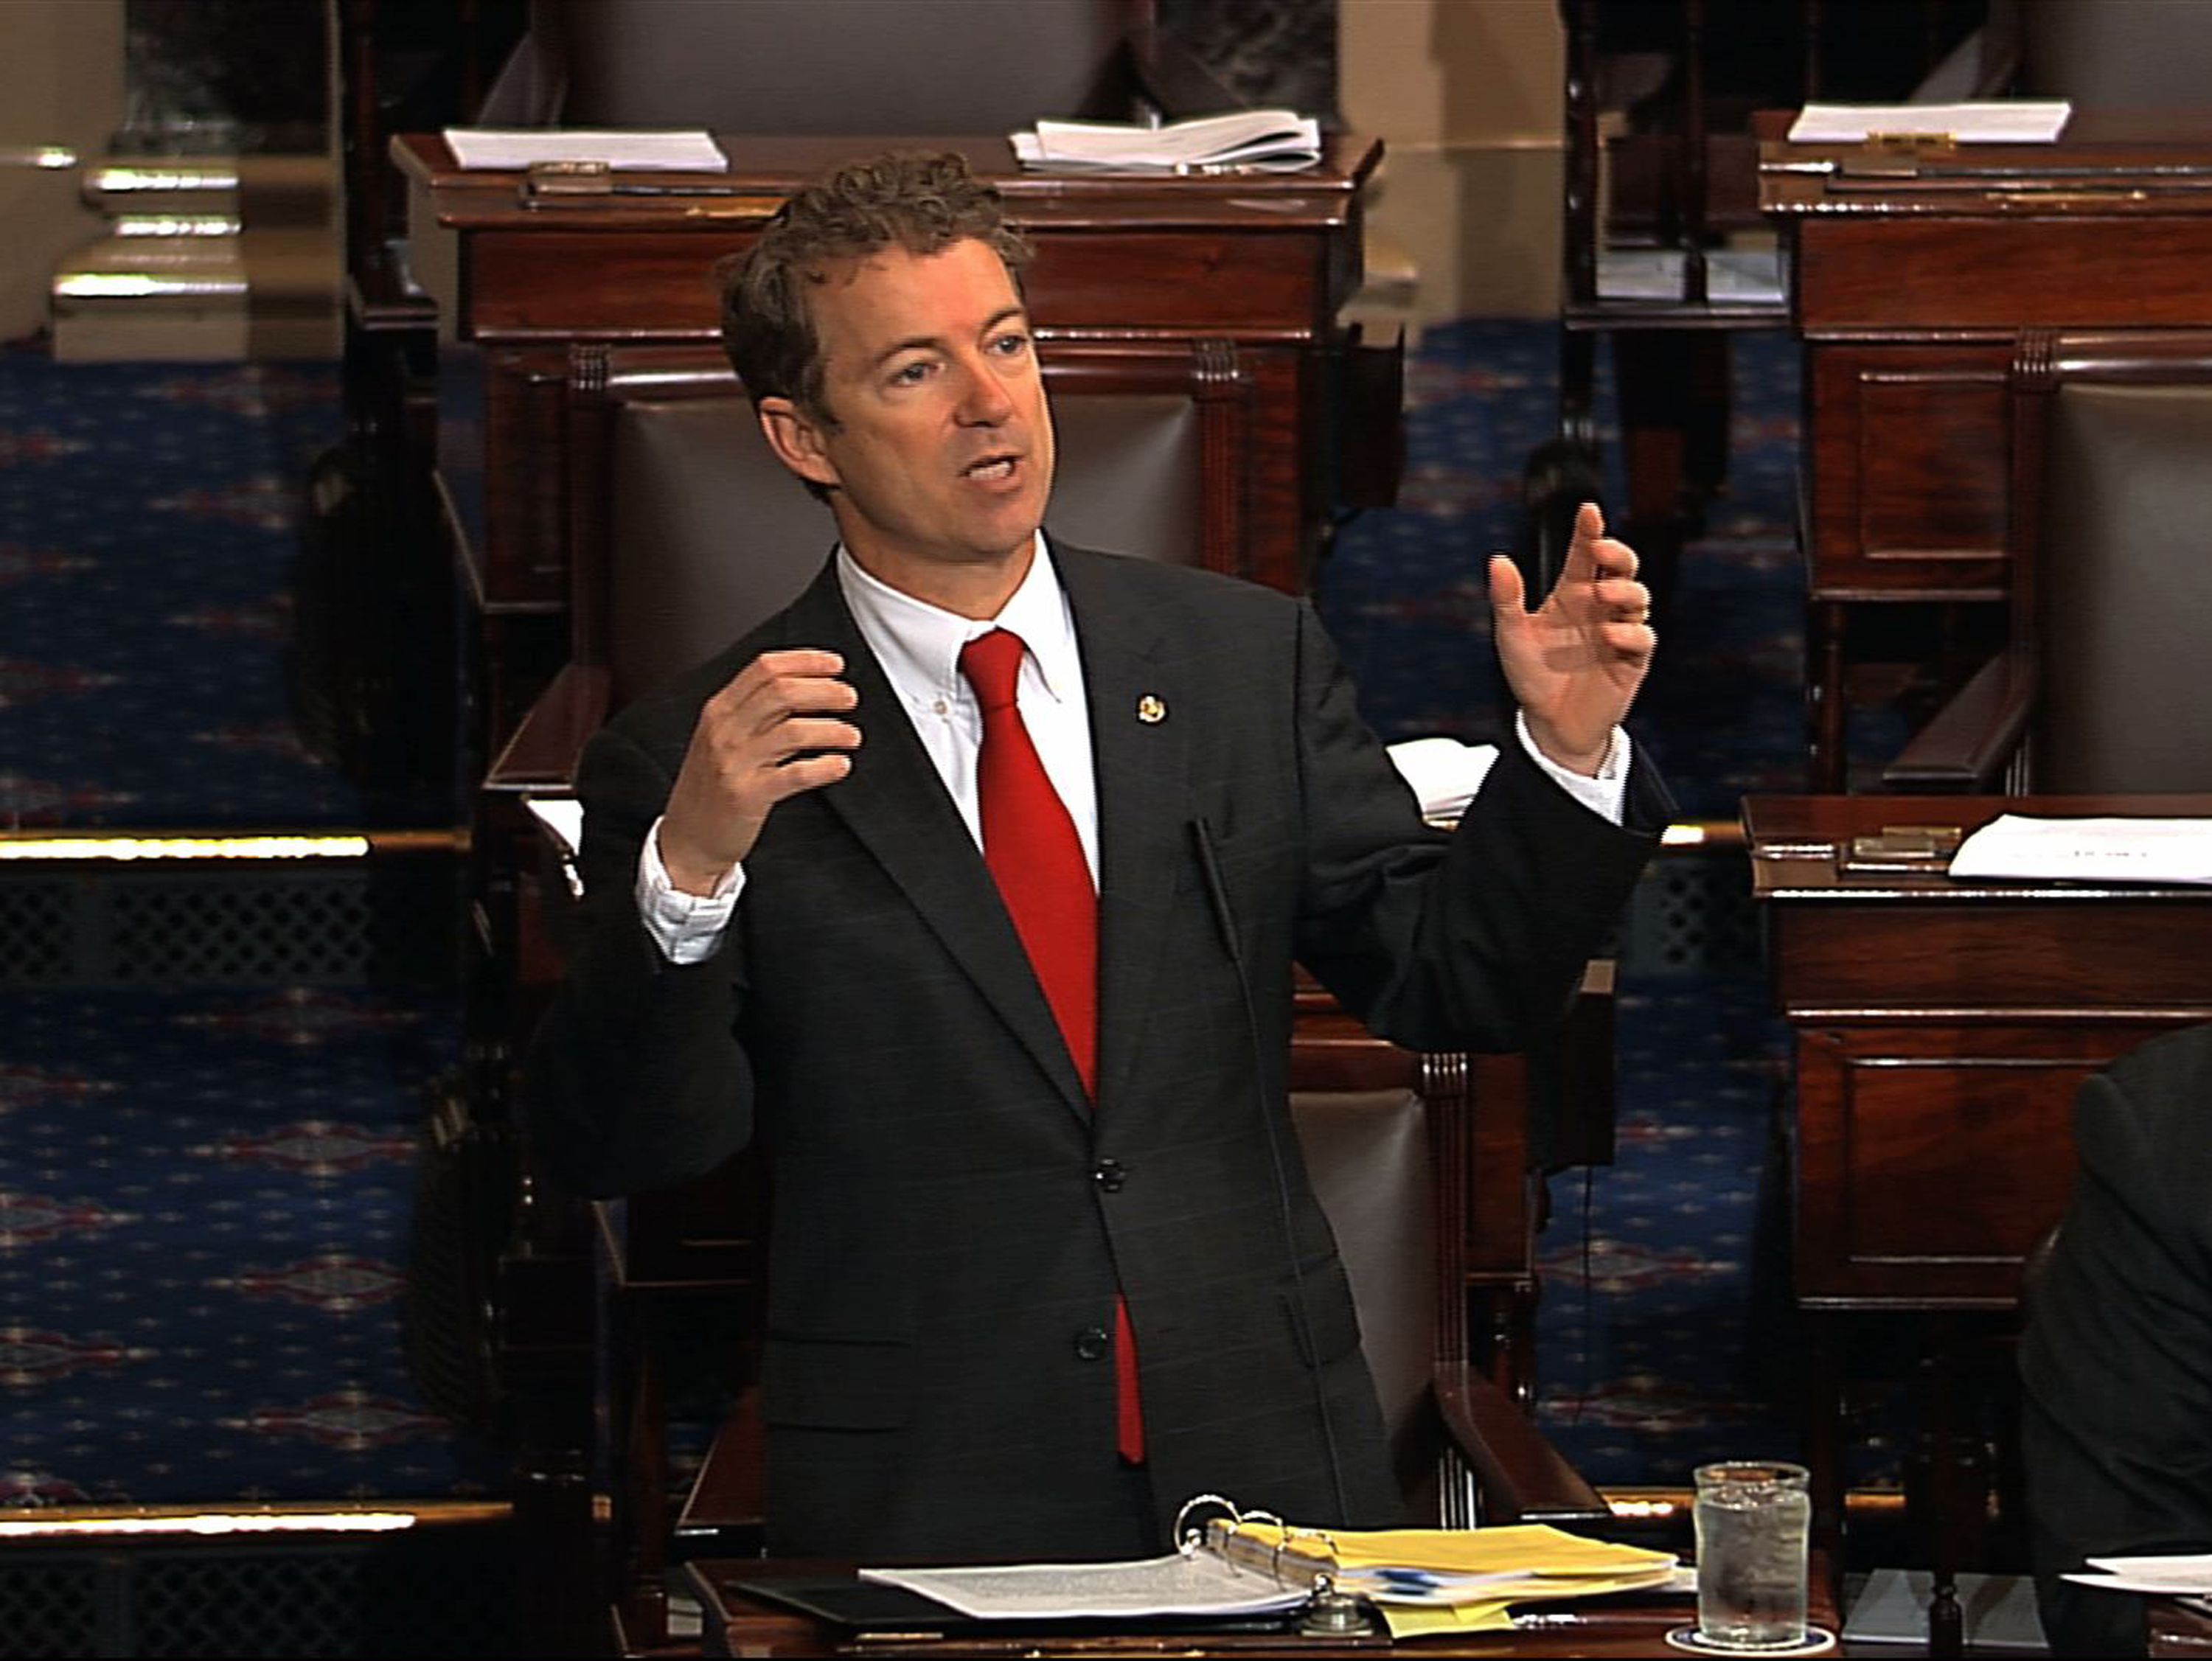 This video frame grab provided by Senate Television shows Sen. Rand Paul, R-Ky. engaged in his filibuster on the floor of the Senate on Capitol Hill in Washington, Wednesday, March 6, 2013. (Senate Television via AP)